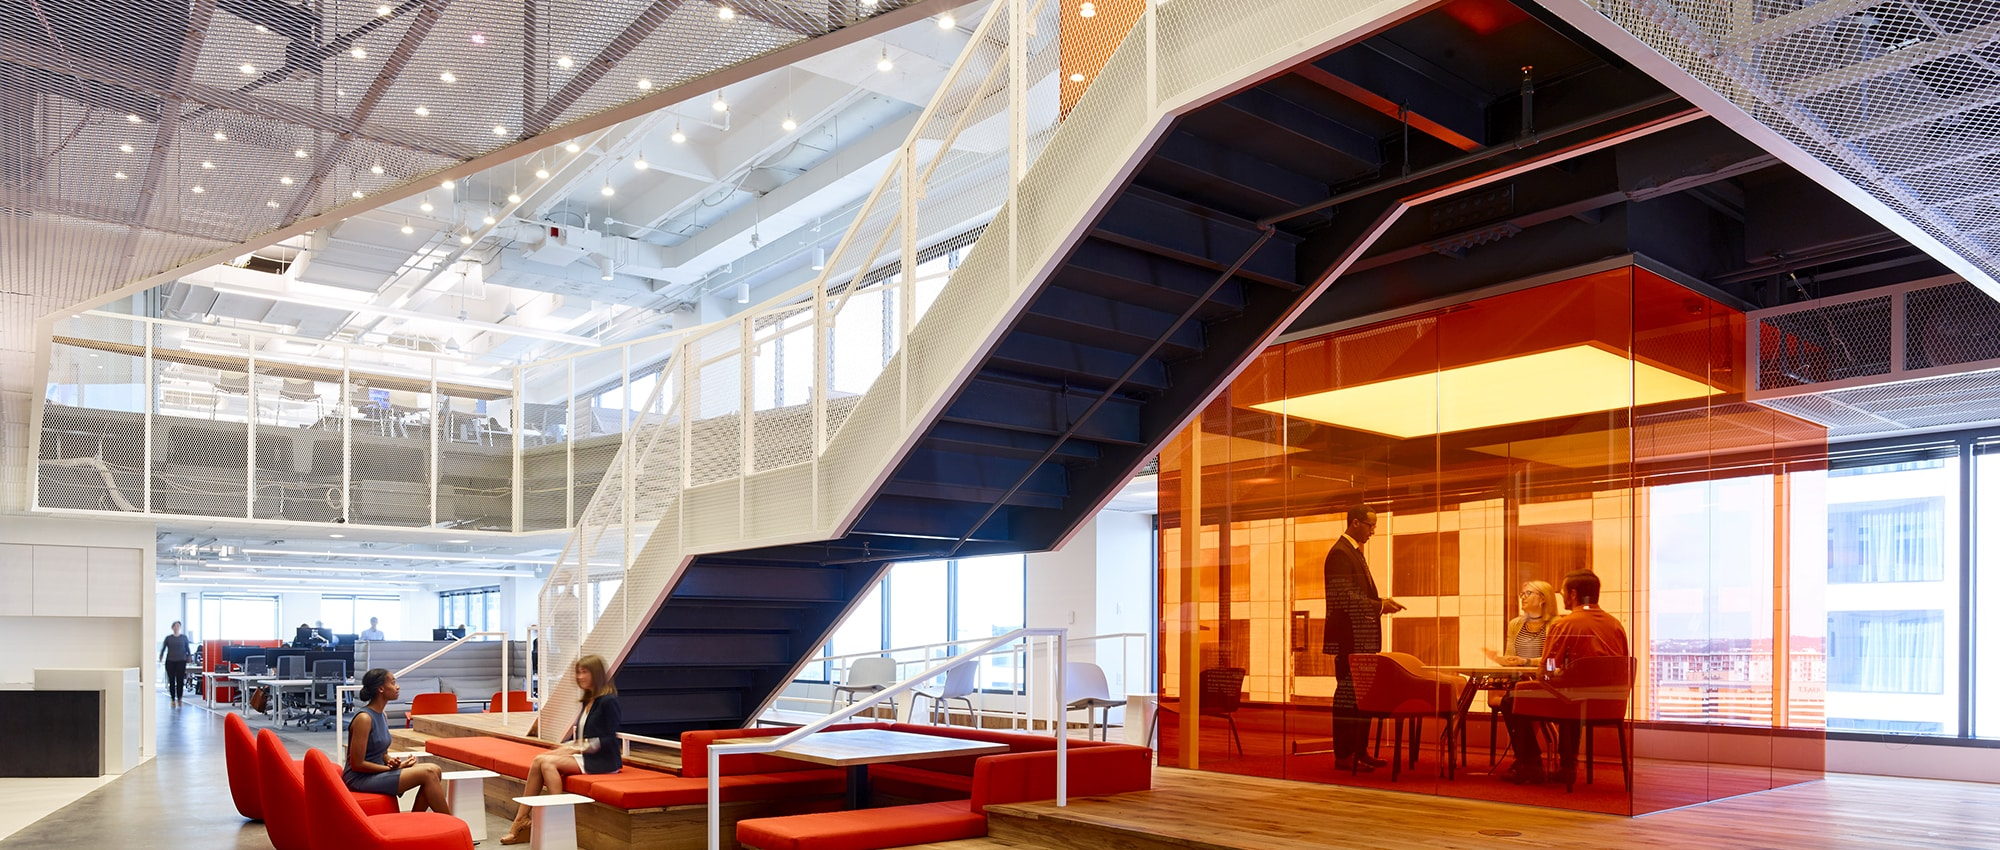 Gerson Lehrman Group's Contemporary Office Space in Austin, Texas